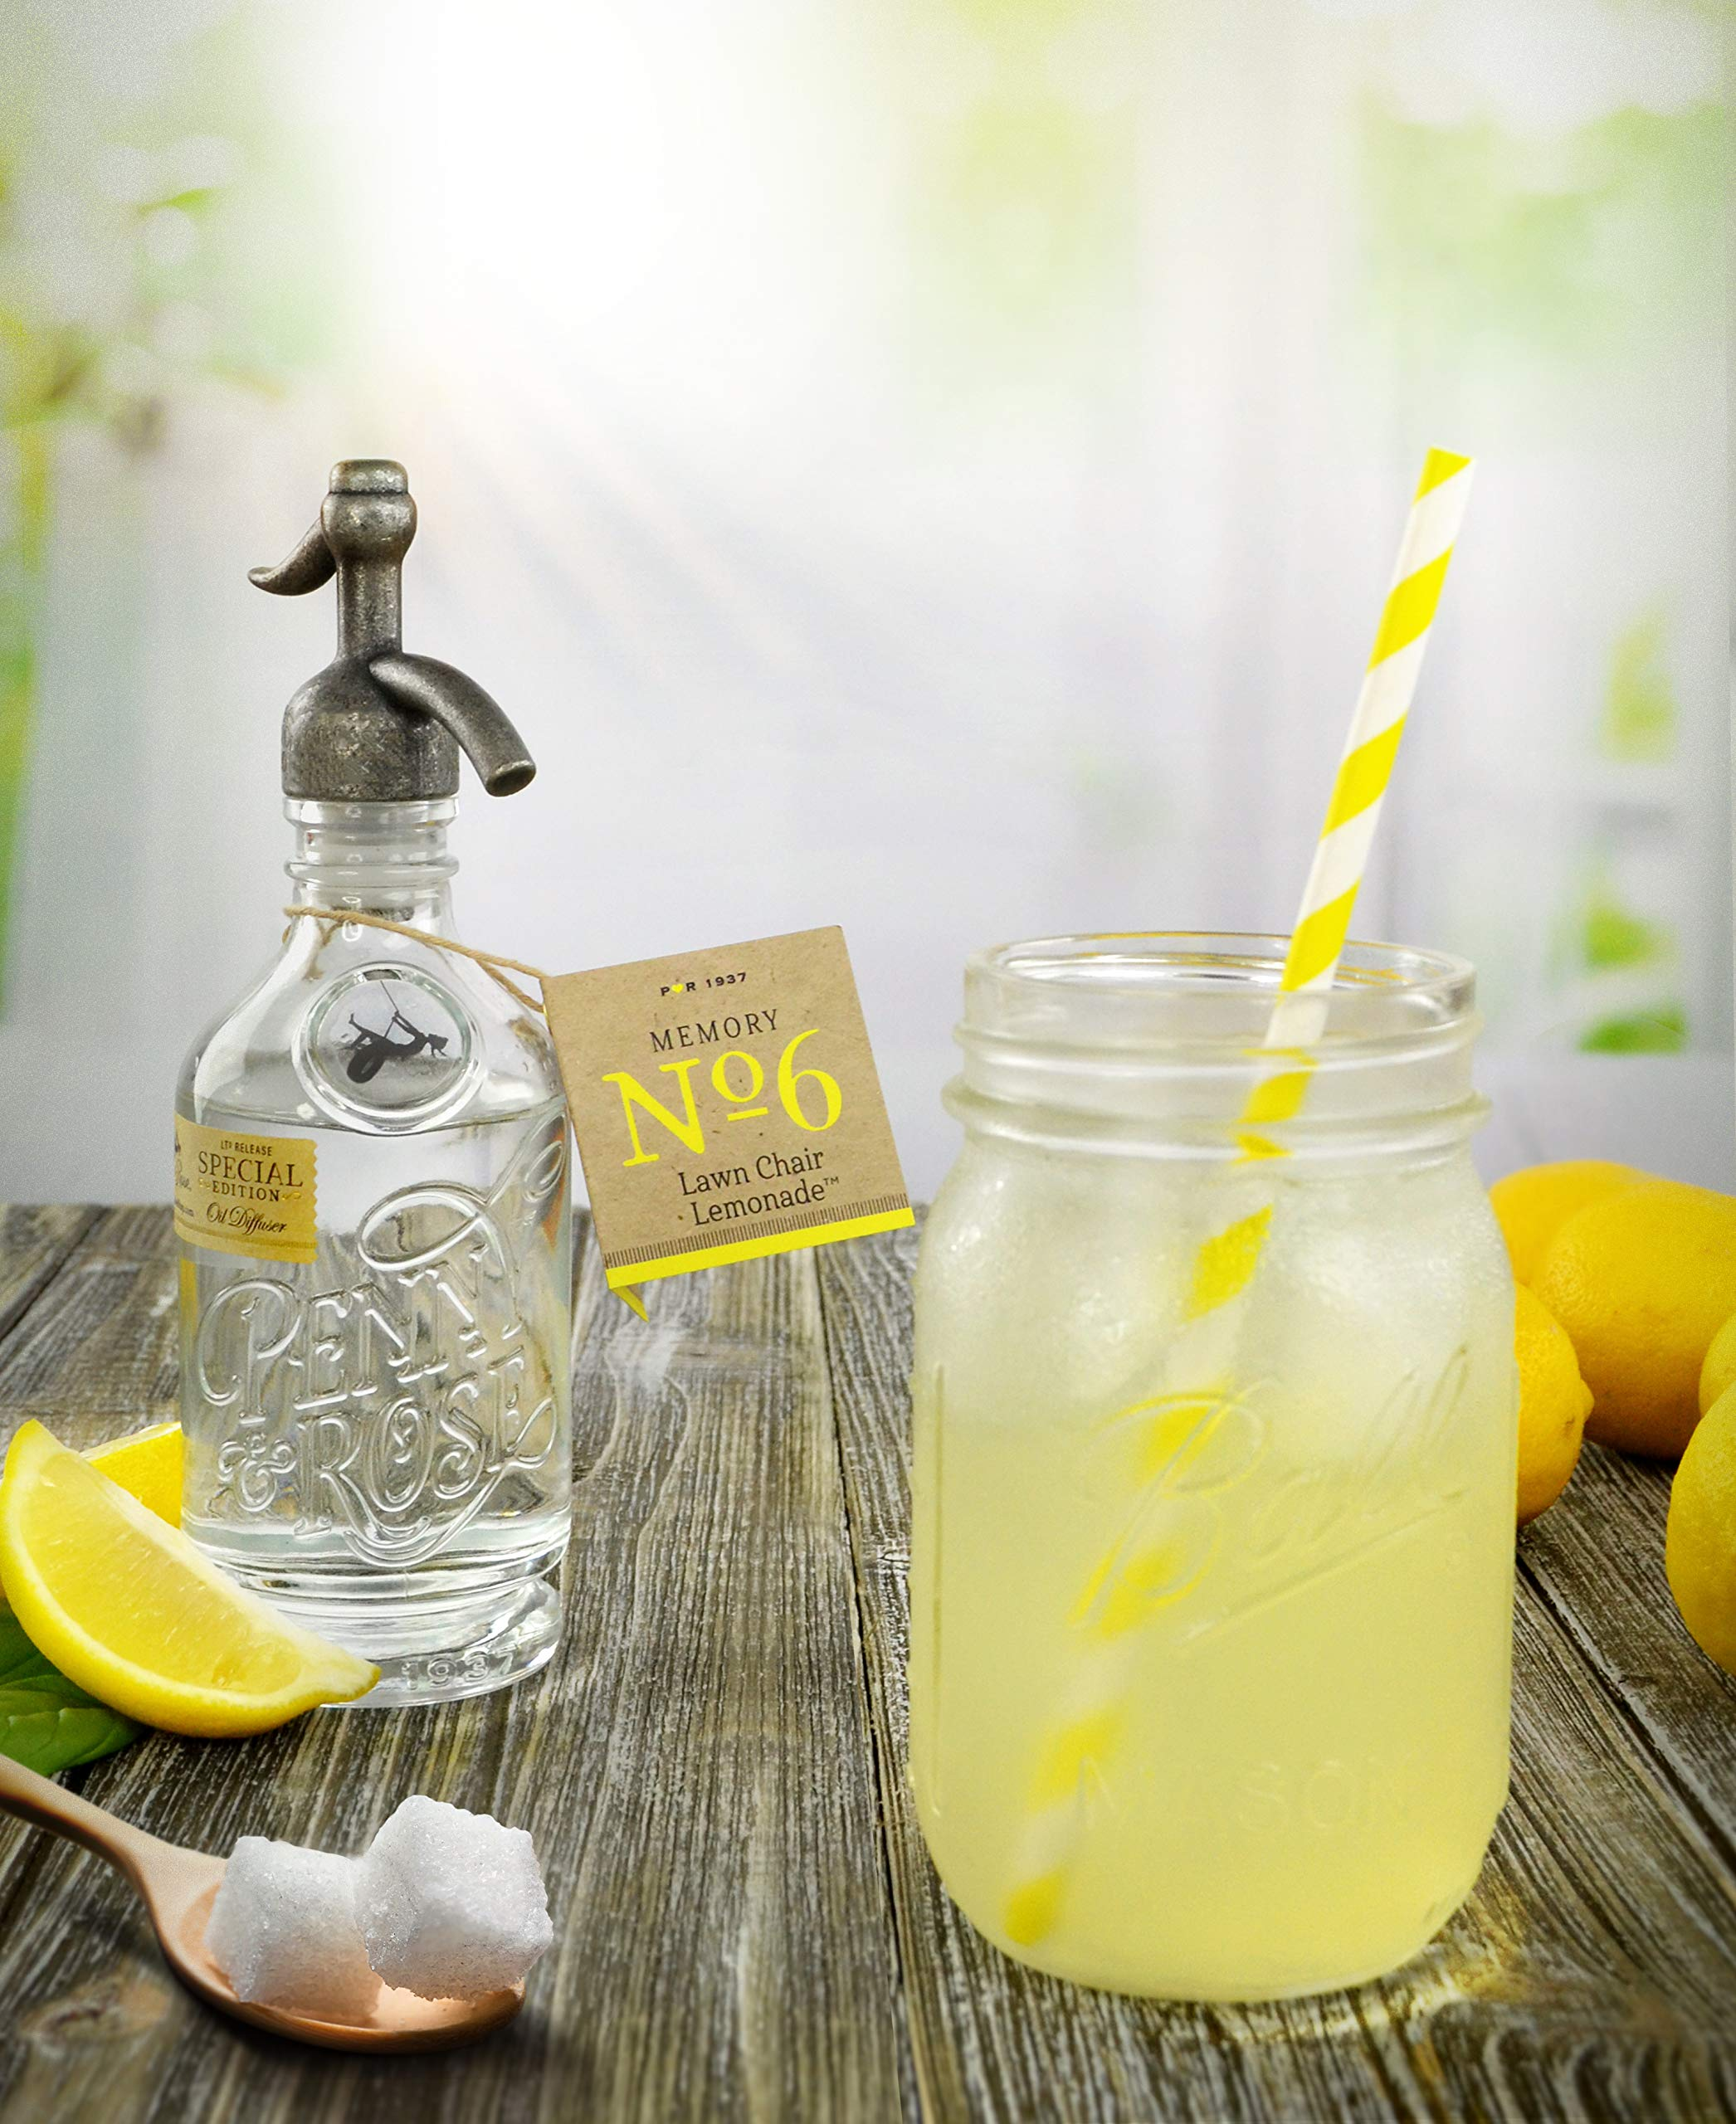 Penny & Rose Sky Rose Diffuser | Lawn Chair Lemonade Oil Scent by PENNY AND ROSE (Image #7)